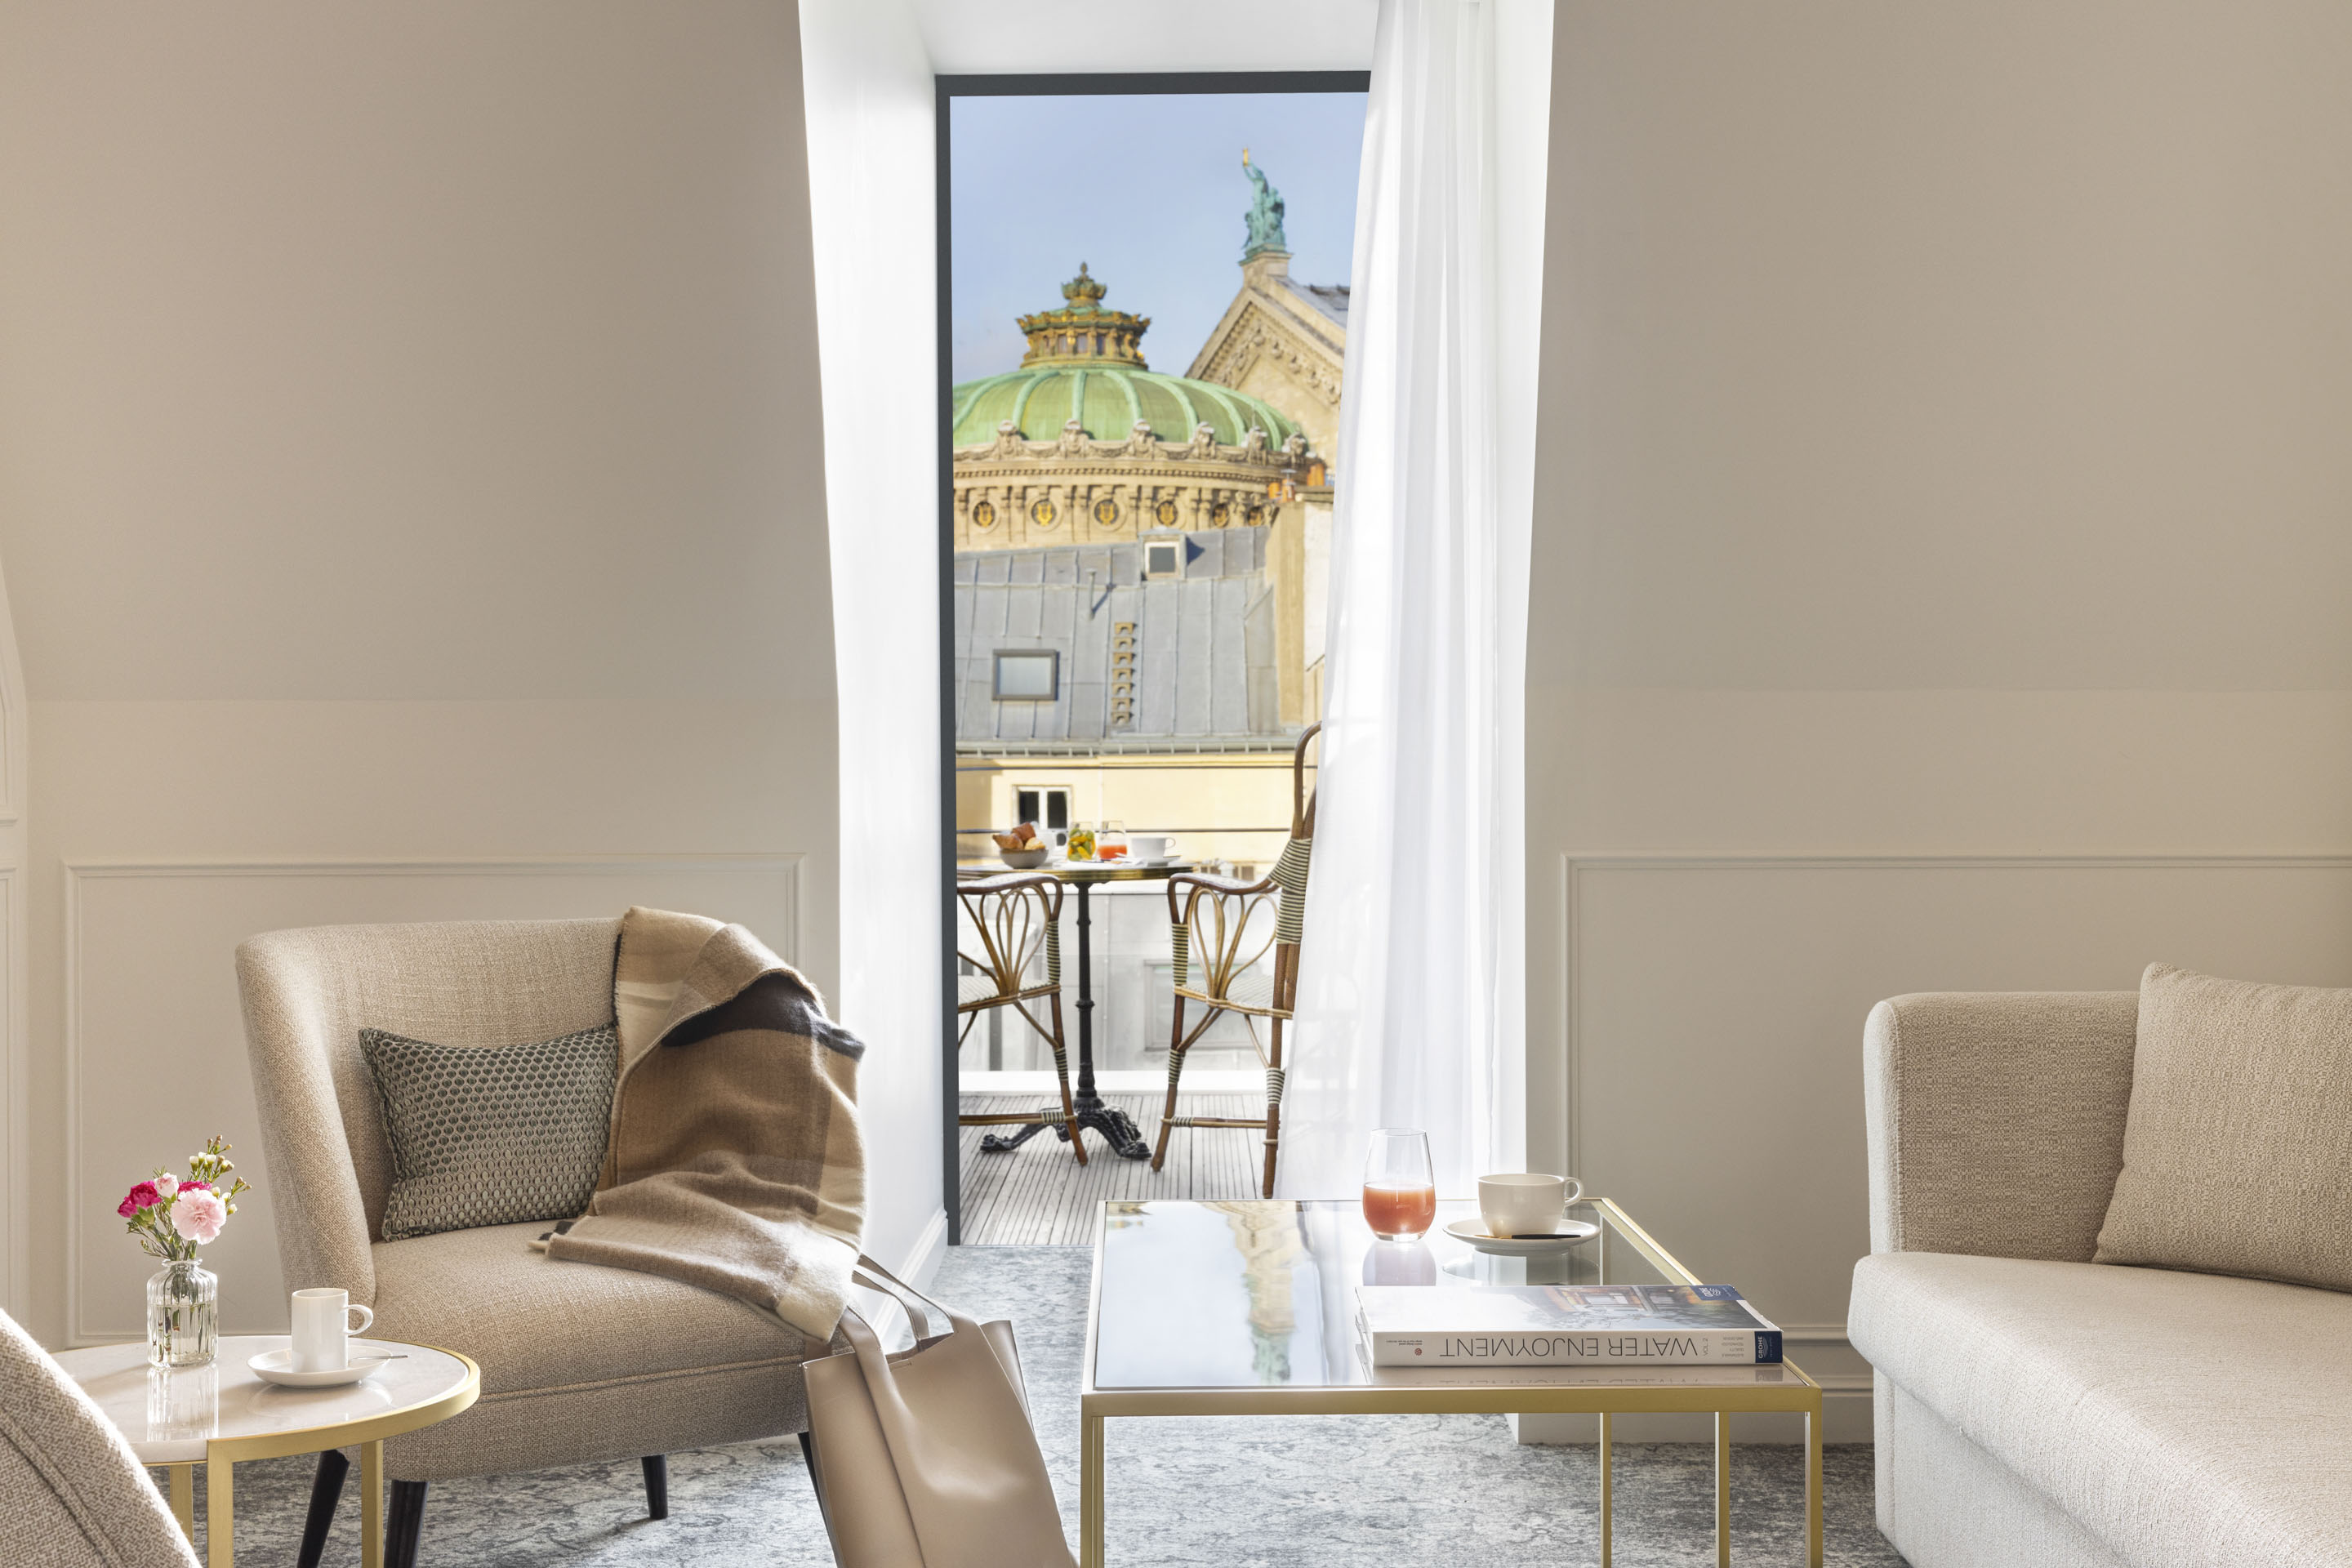 Maison Albar Hotels Le Vendome Opera Suite view